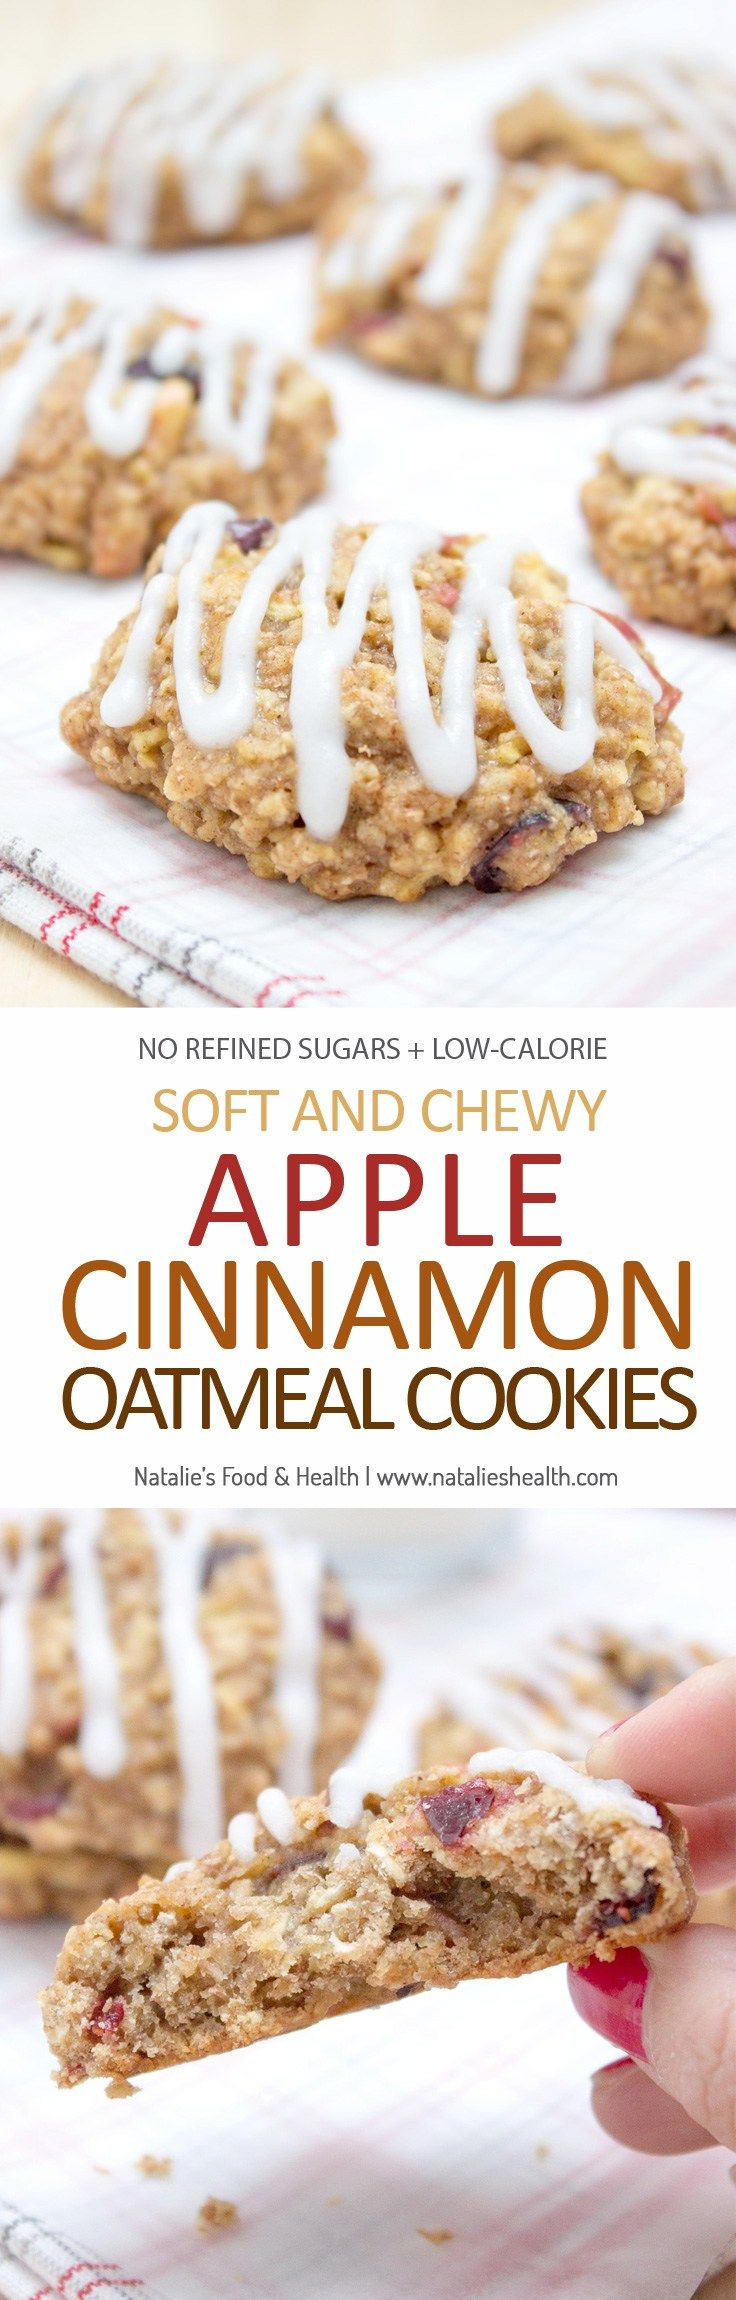 Fragrant, soft and chewy Apple Cinnamon Oatmeal Cookies are perfect high-fiber breakfast or healthy snack ready in just 20 minutes. These cookies are very nutritious, made with all healthy ingredients and contain no refined sugars. CLICK to grab the recipe or PIN for later!